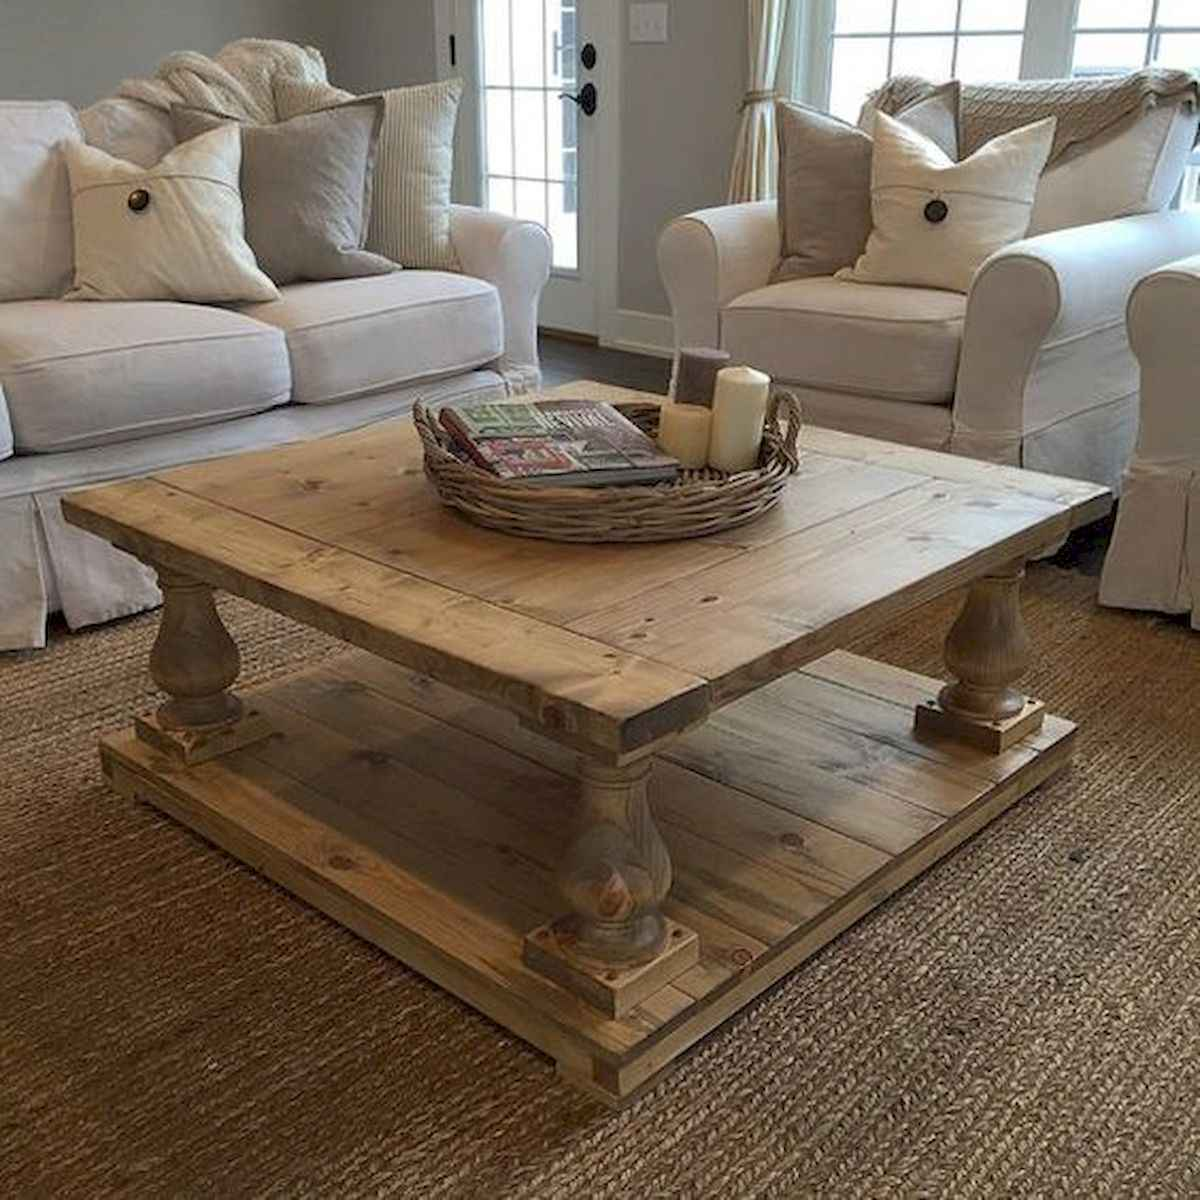 70 Suprising DIY Projects Mini Pallet Coffee Table Design Ideas (28)